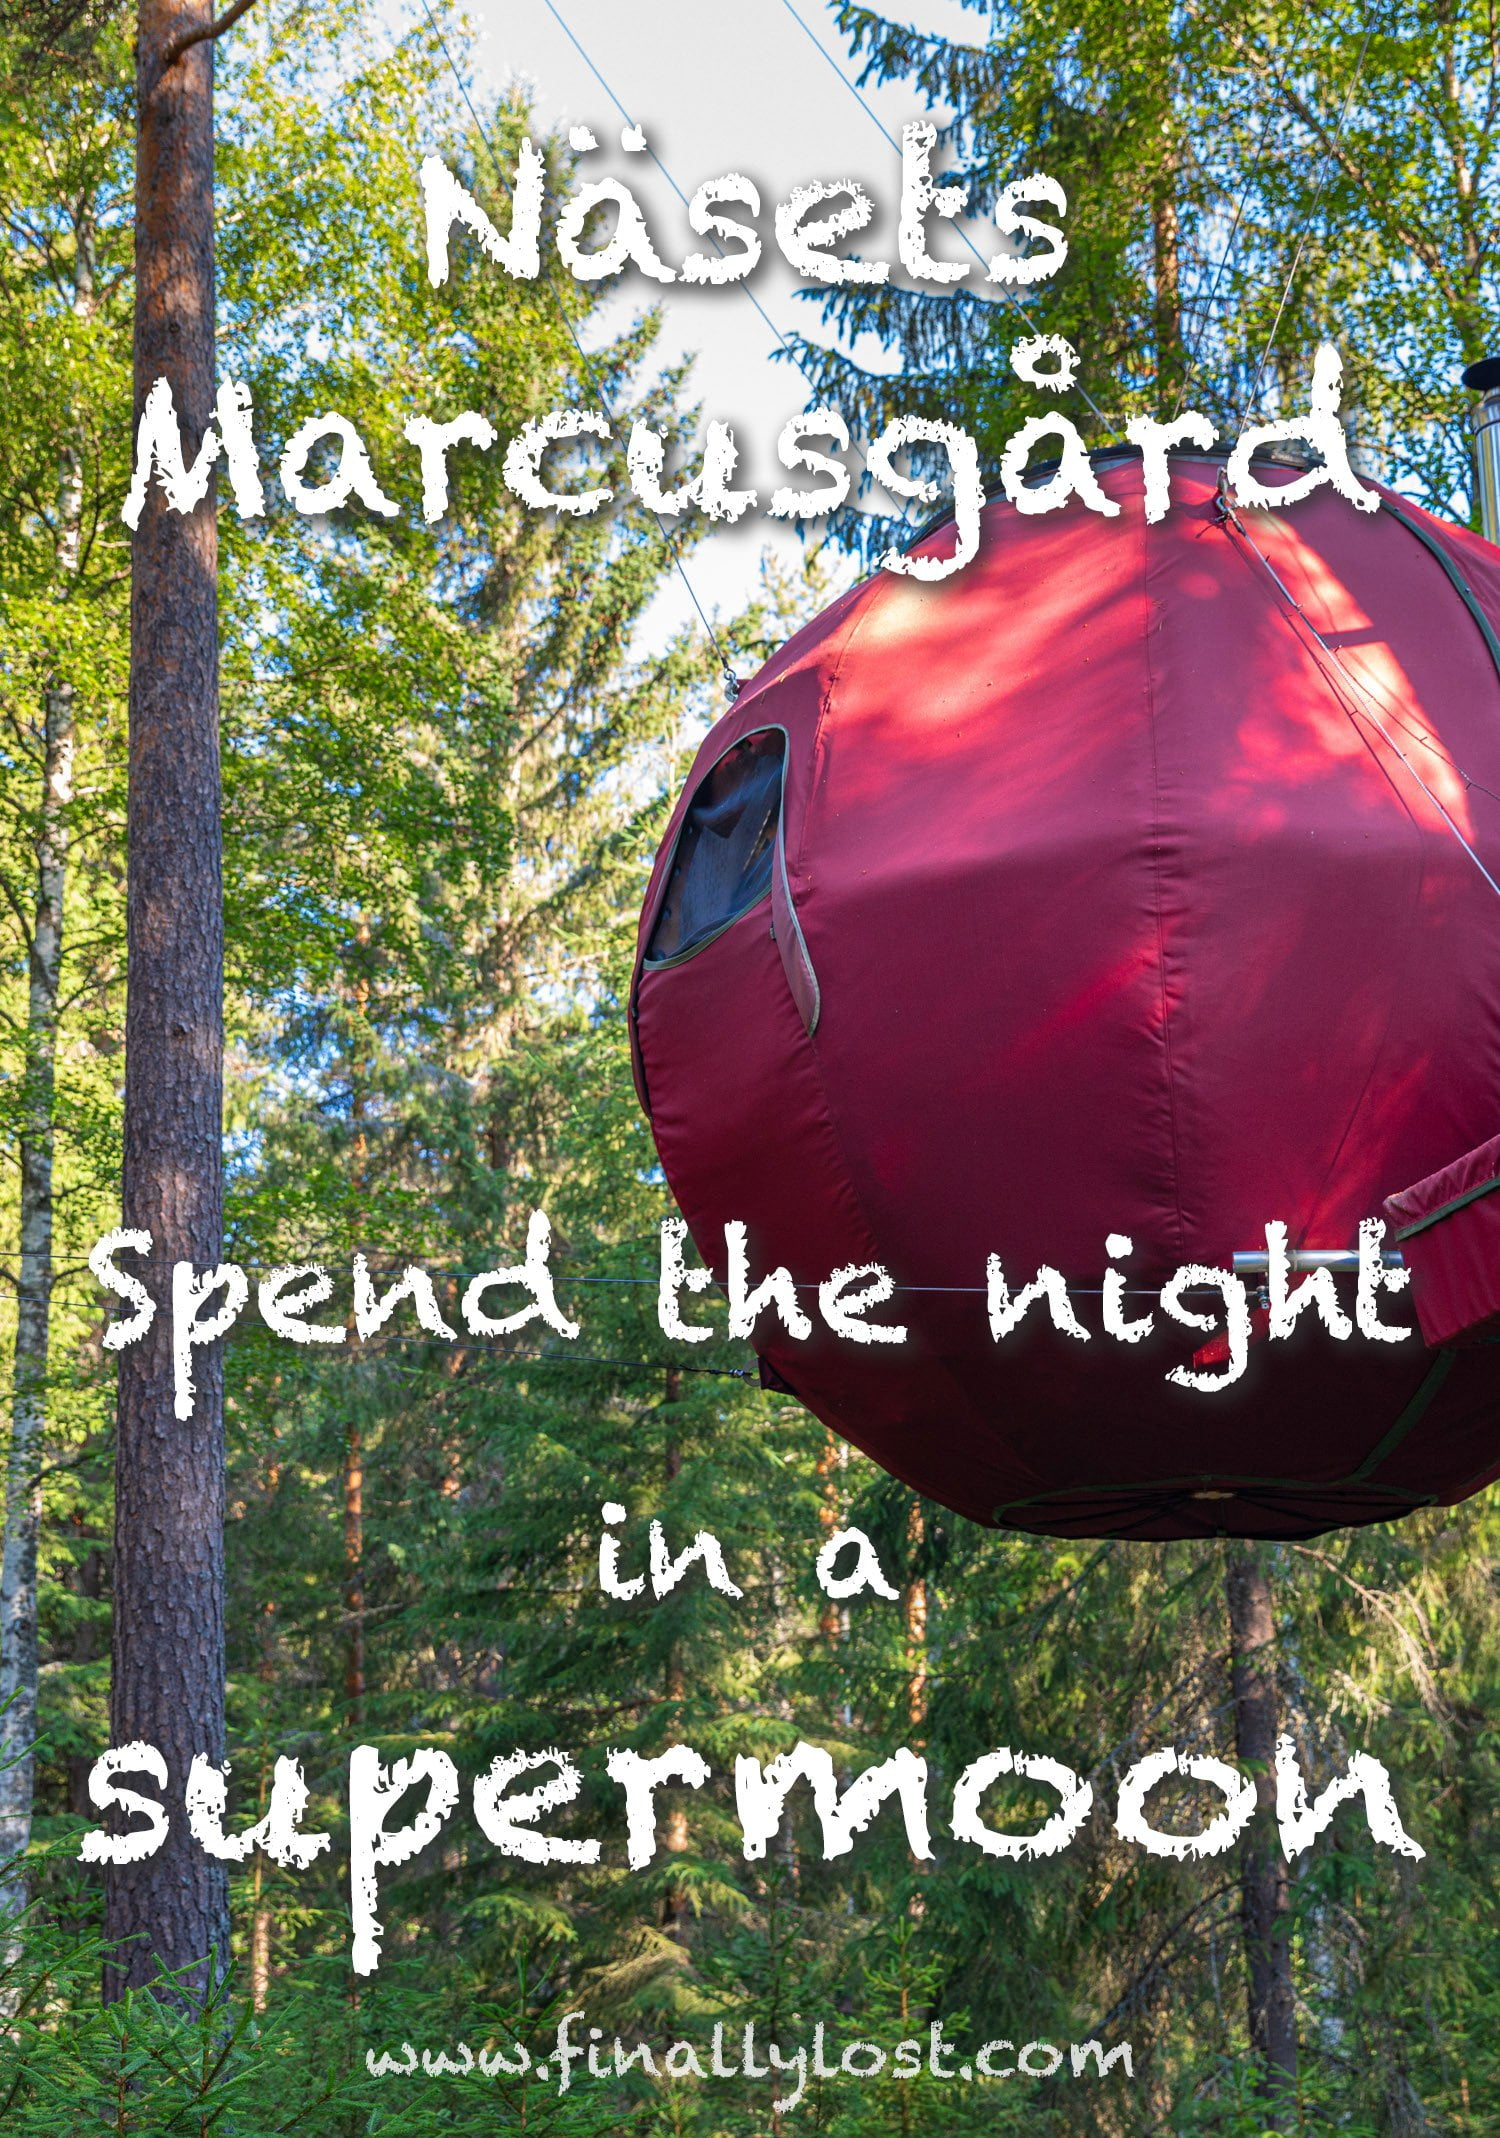 Nasets Marcusgard - Spend the night in a supermoon